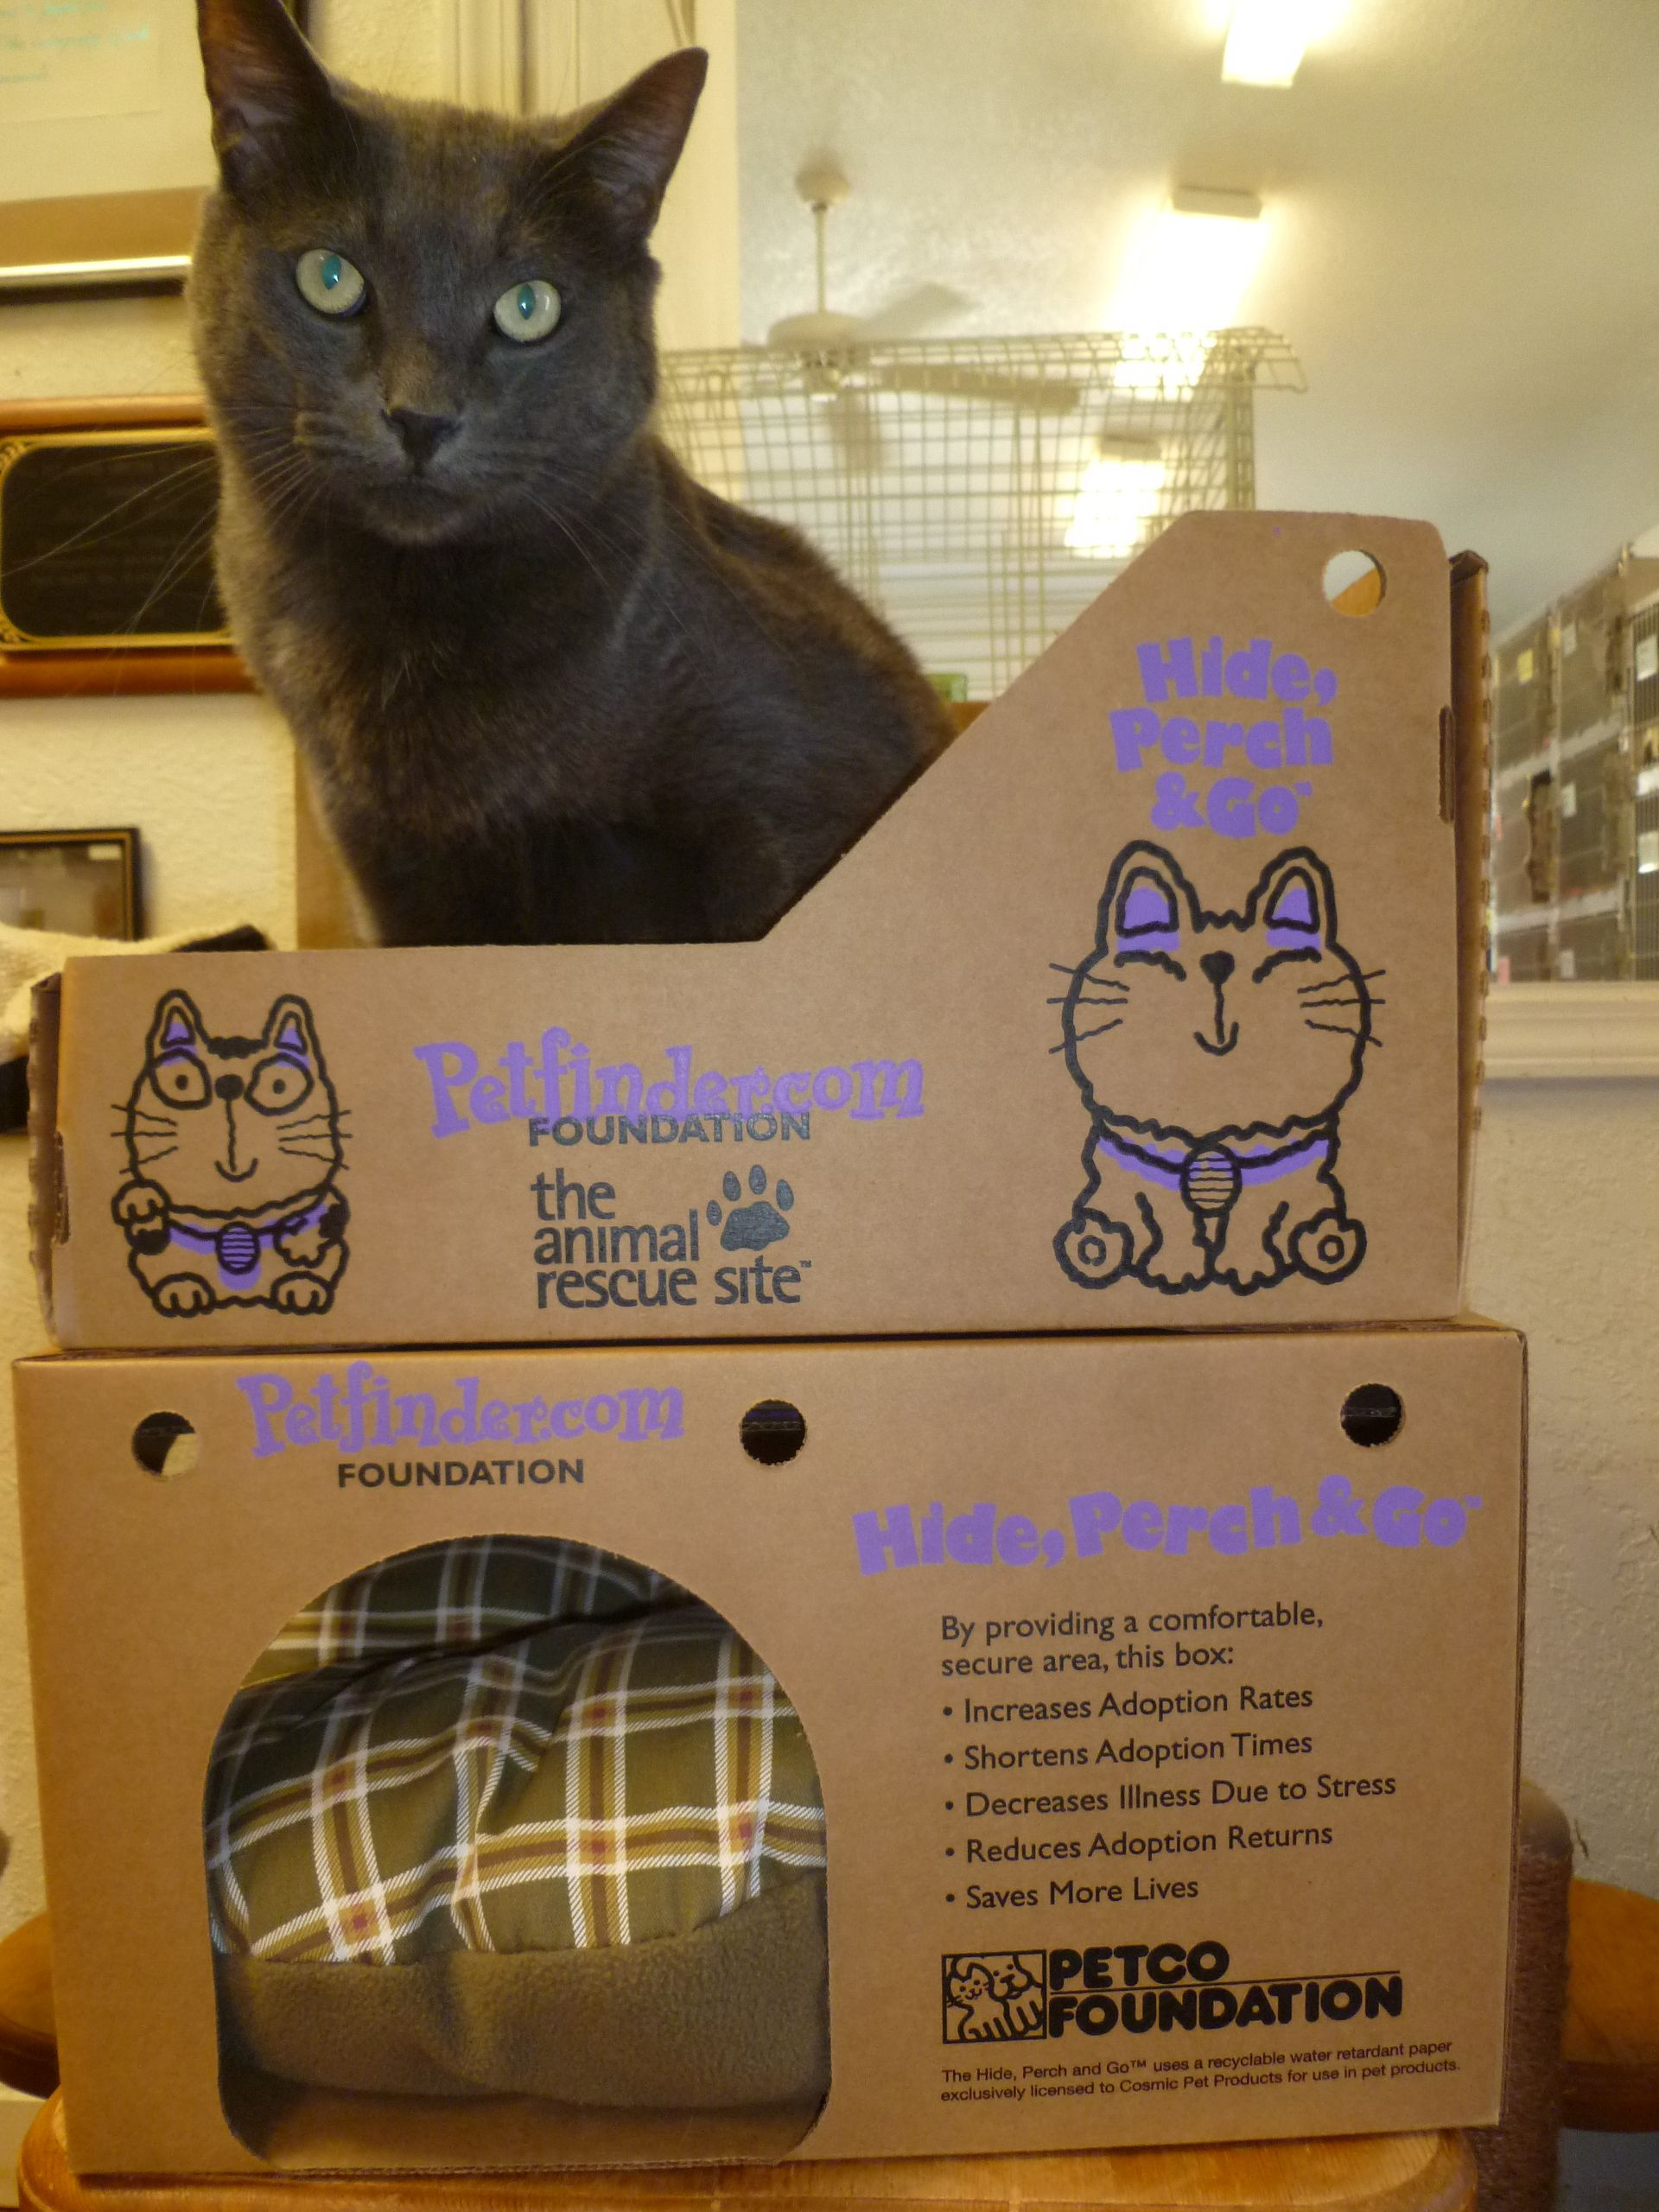 Cheech Demonstrates The New Hide Perch Go Boxes From Petco Petfinder Http Www Petfinder Com Admin Content Hide Perc Animal Rescue Site Animal Rescue Petco